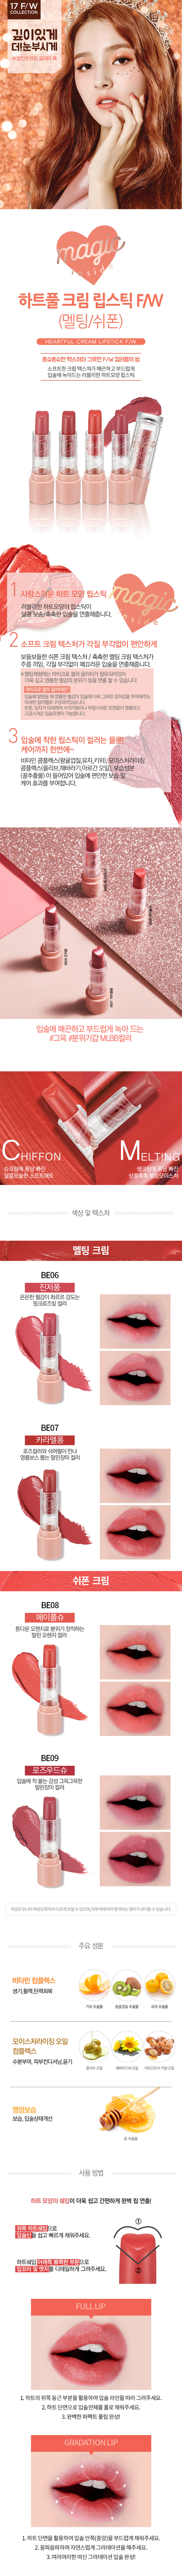 Holika Holika Heartful Cream Lipstick FW 3.5g malaysia singapore indonesia